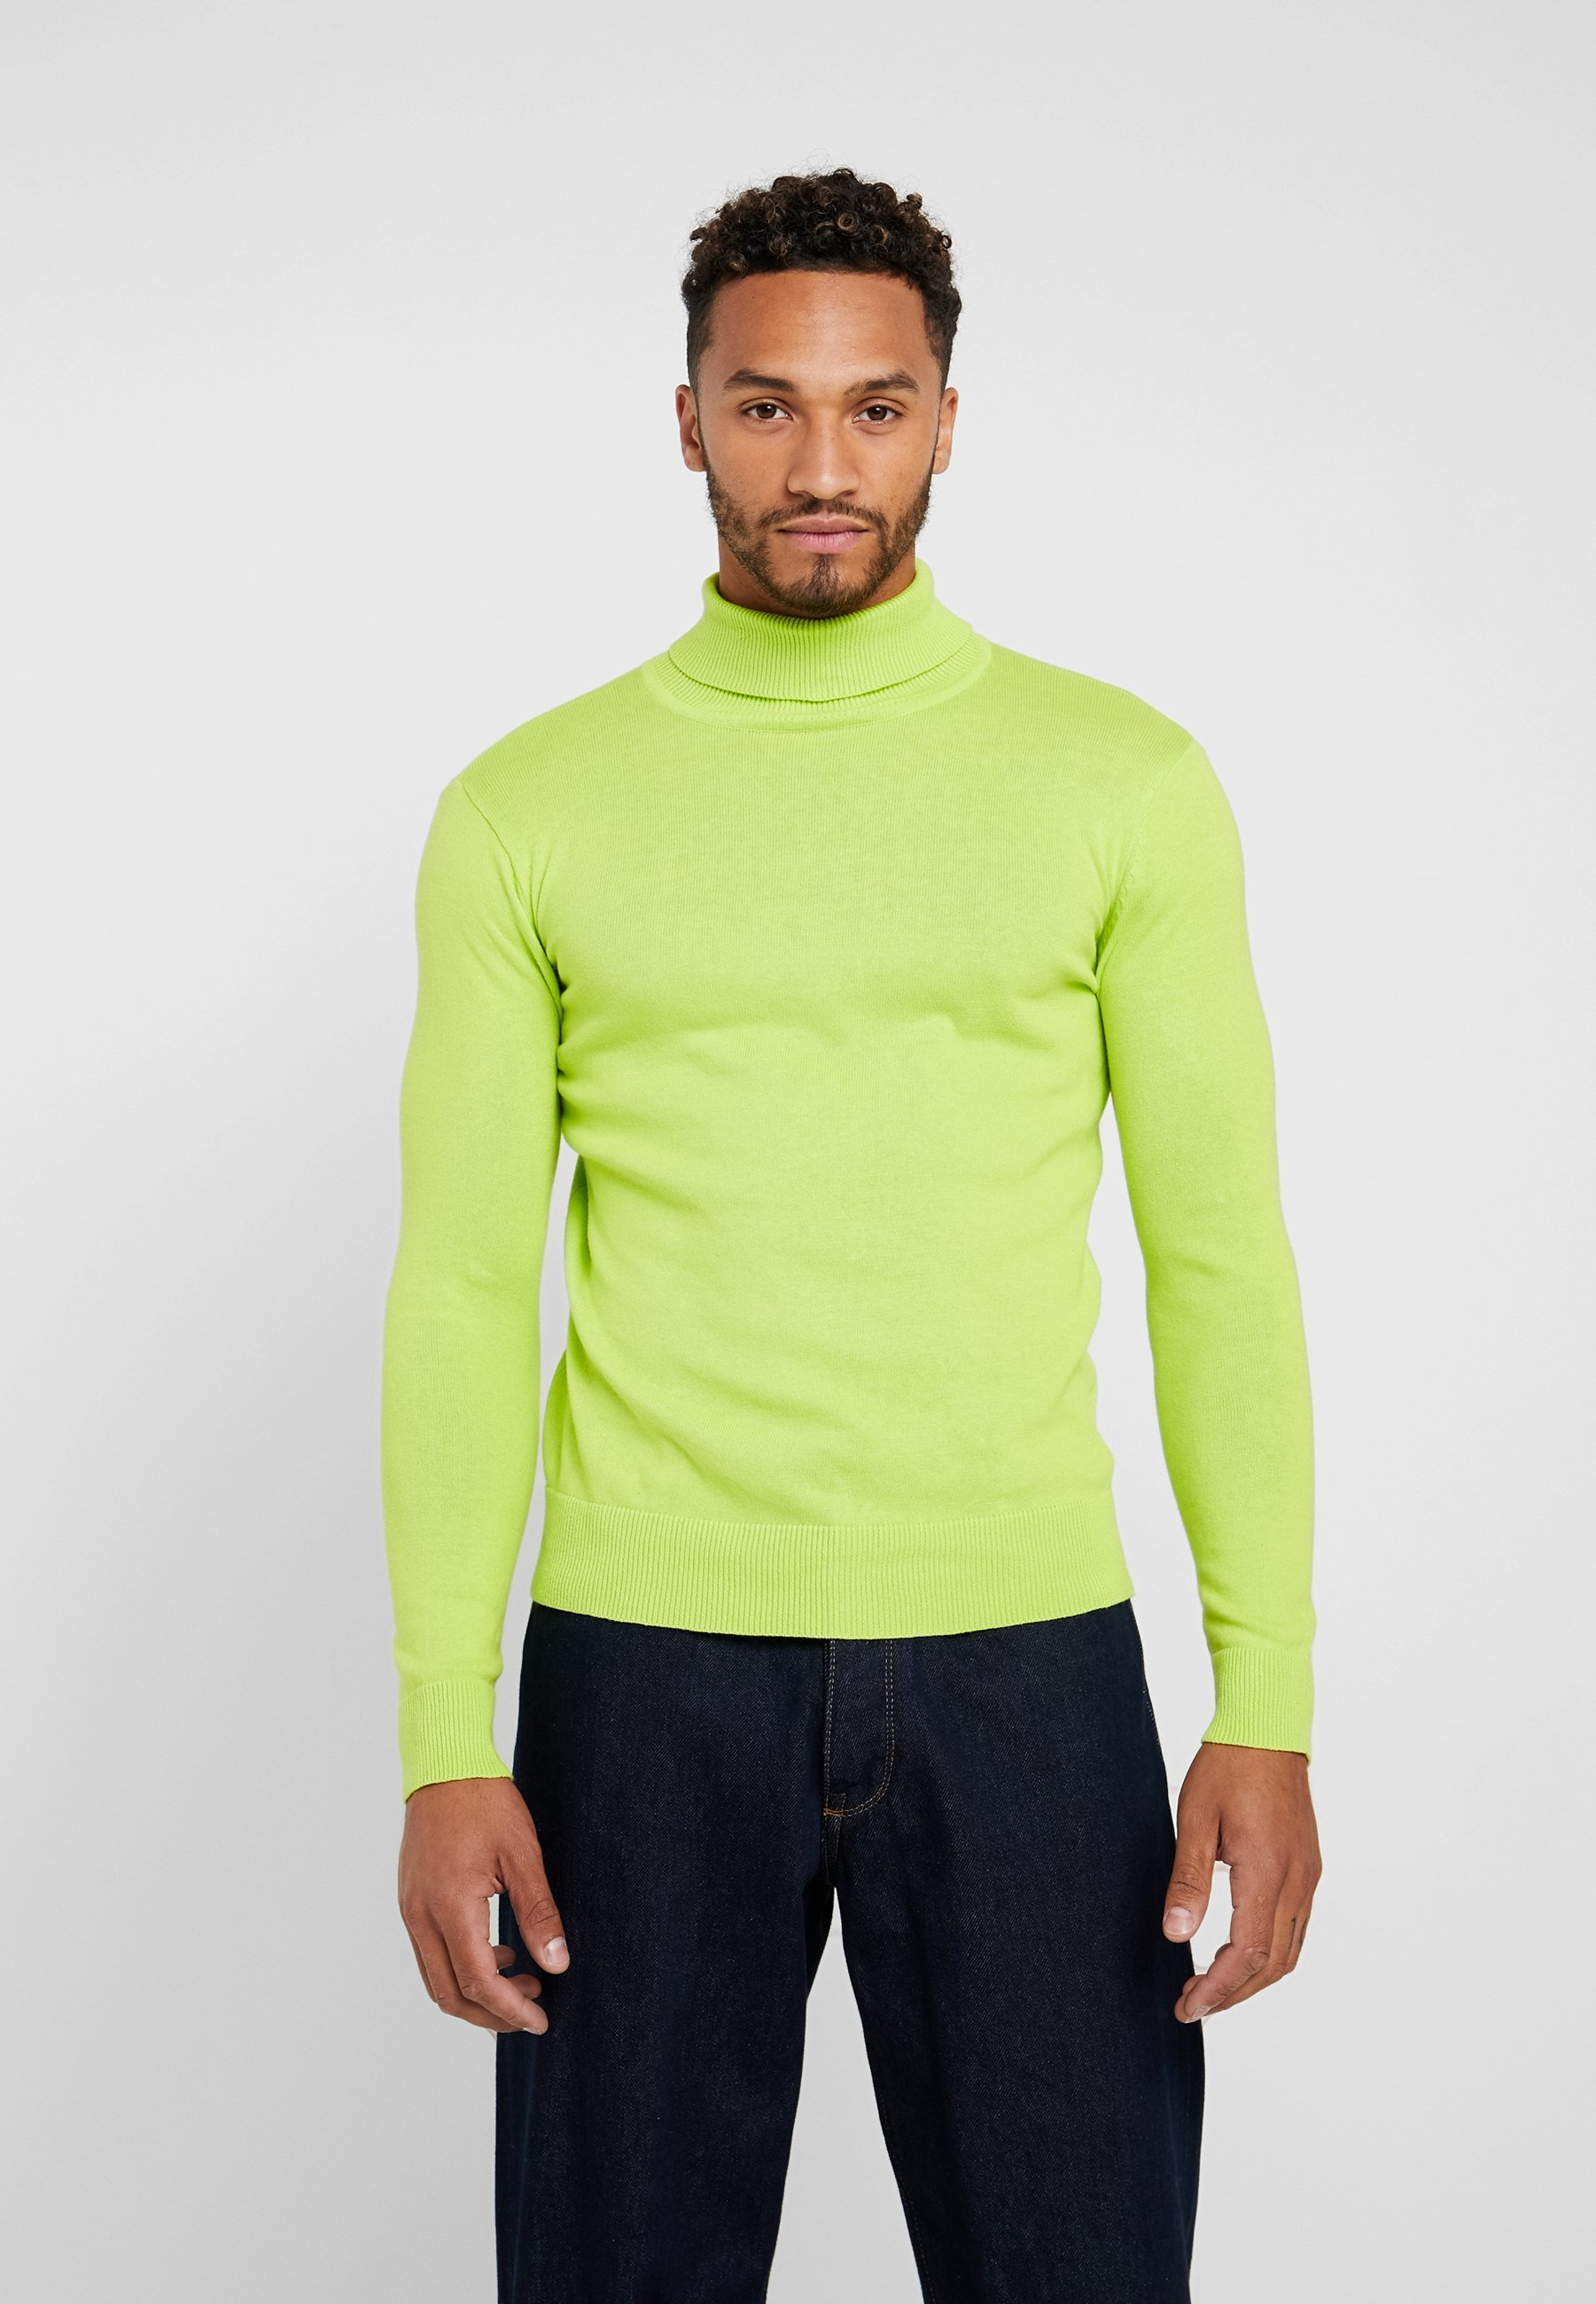 Soul HumetPullover Green HumetPullover Brave Soul Neon Green Brave Neon 9I2WEDH